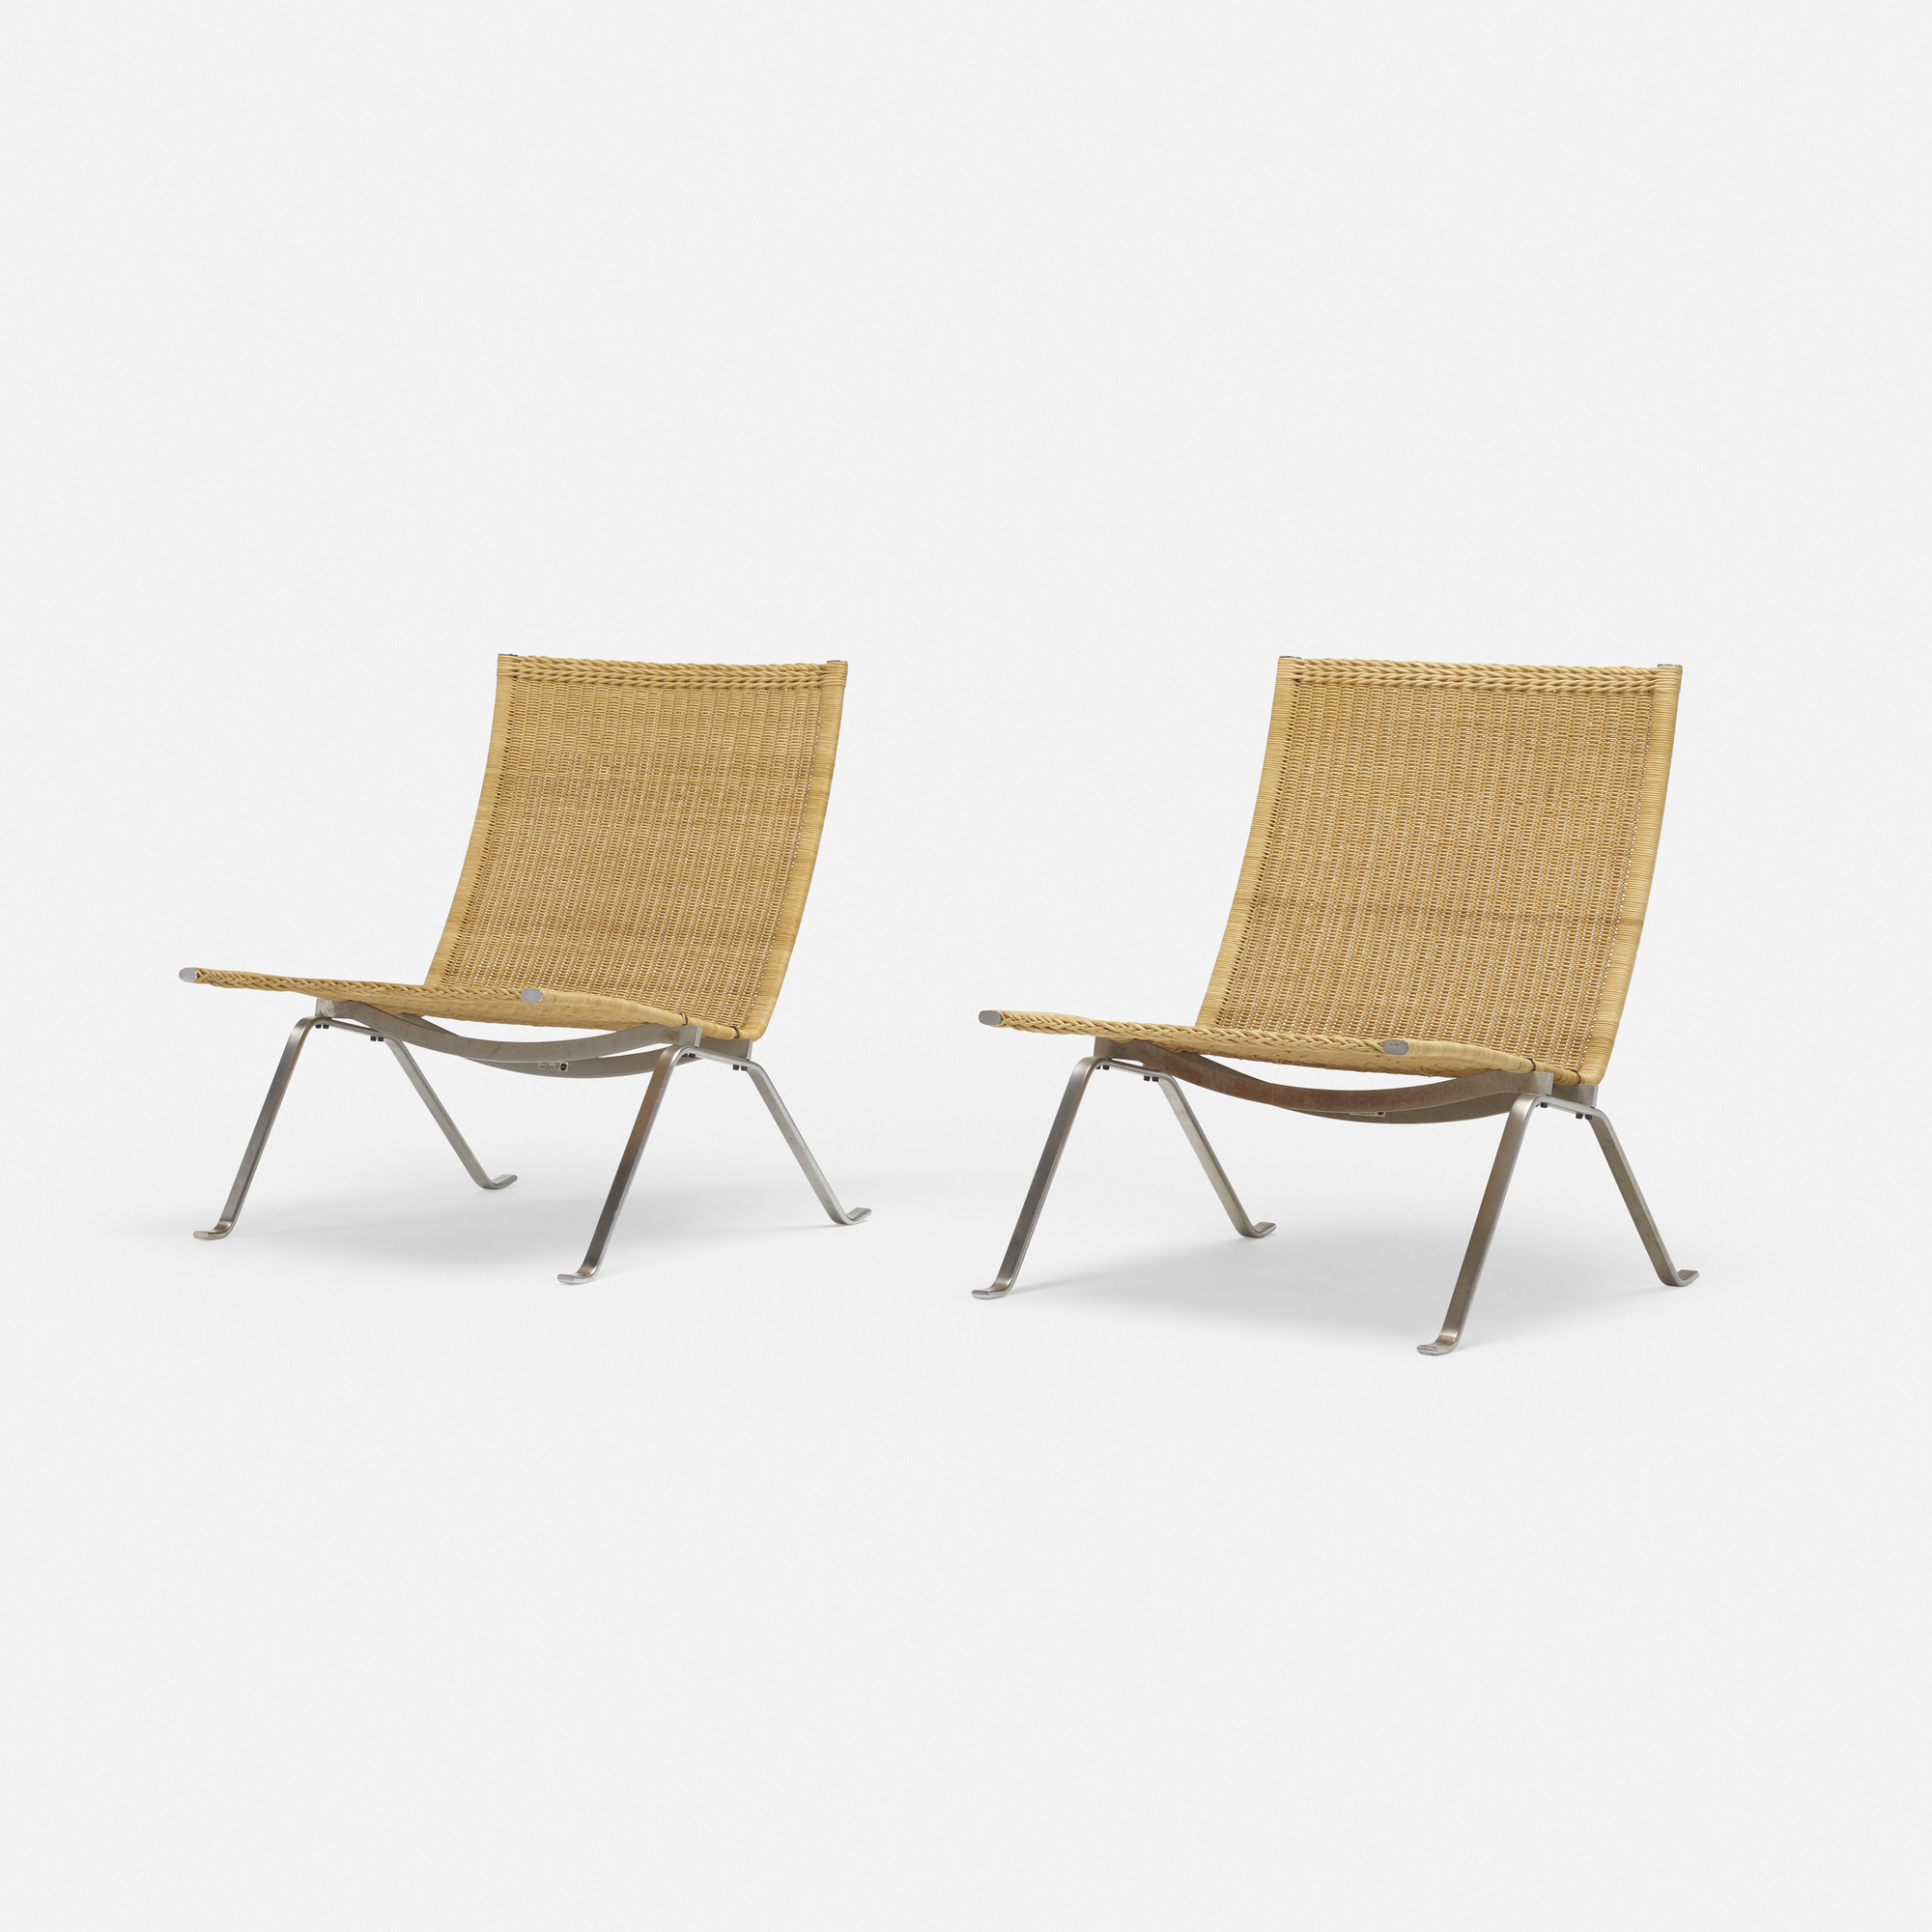 387: Poul Kjaerholm / PK 22 lounge chairs, pair (1 of 3)